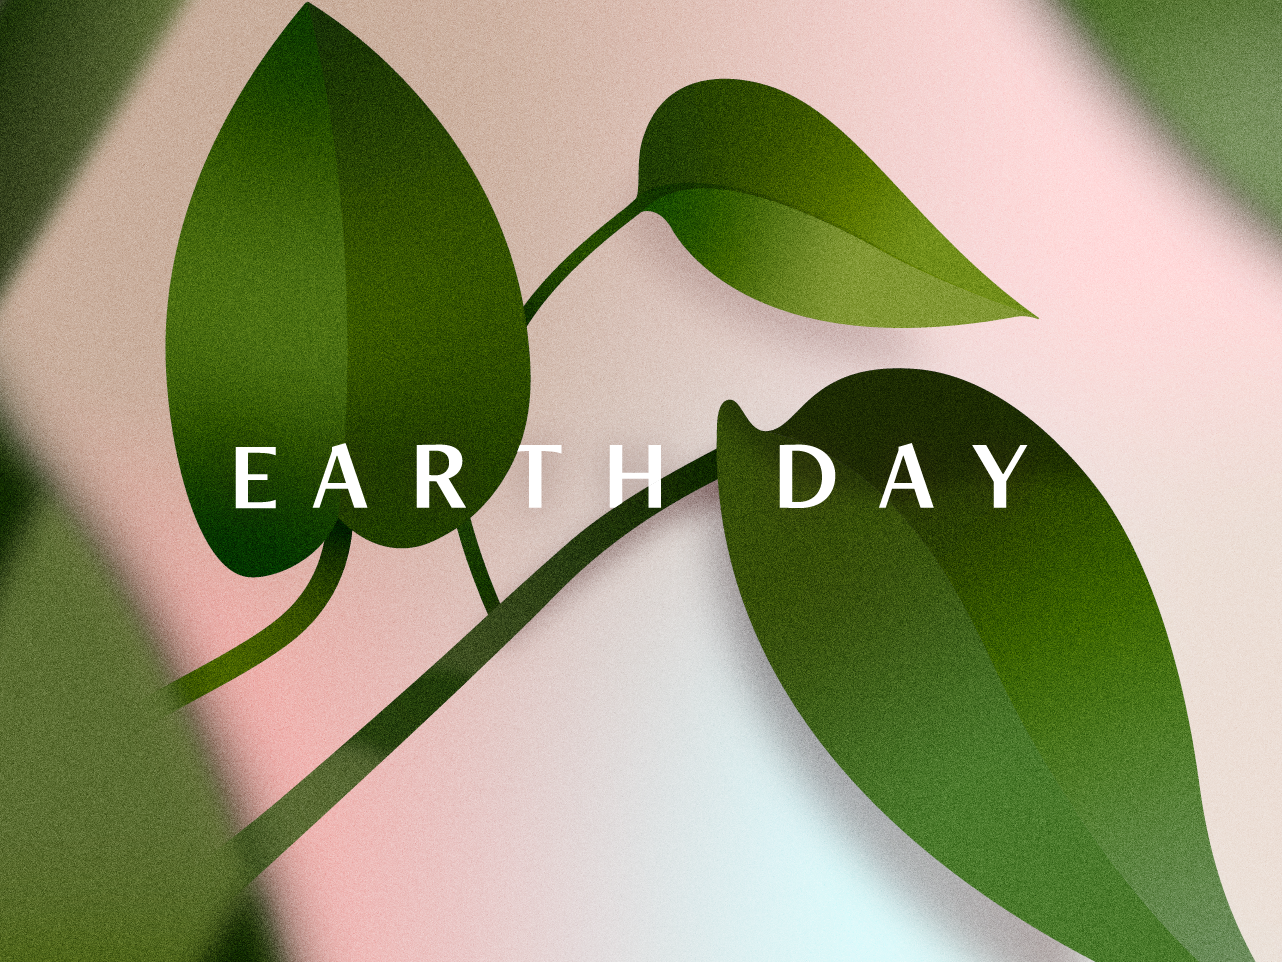 Bsds Thunderdome: Earth Day grain texture grainy vector illustration plant illustration earthday earth plants planet